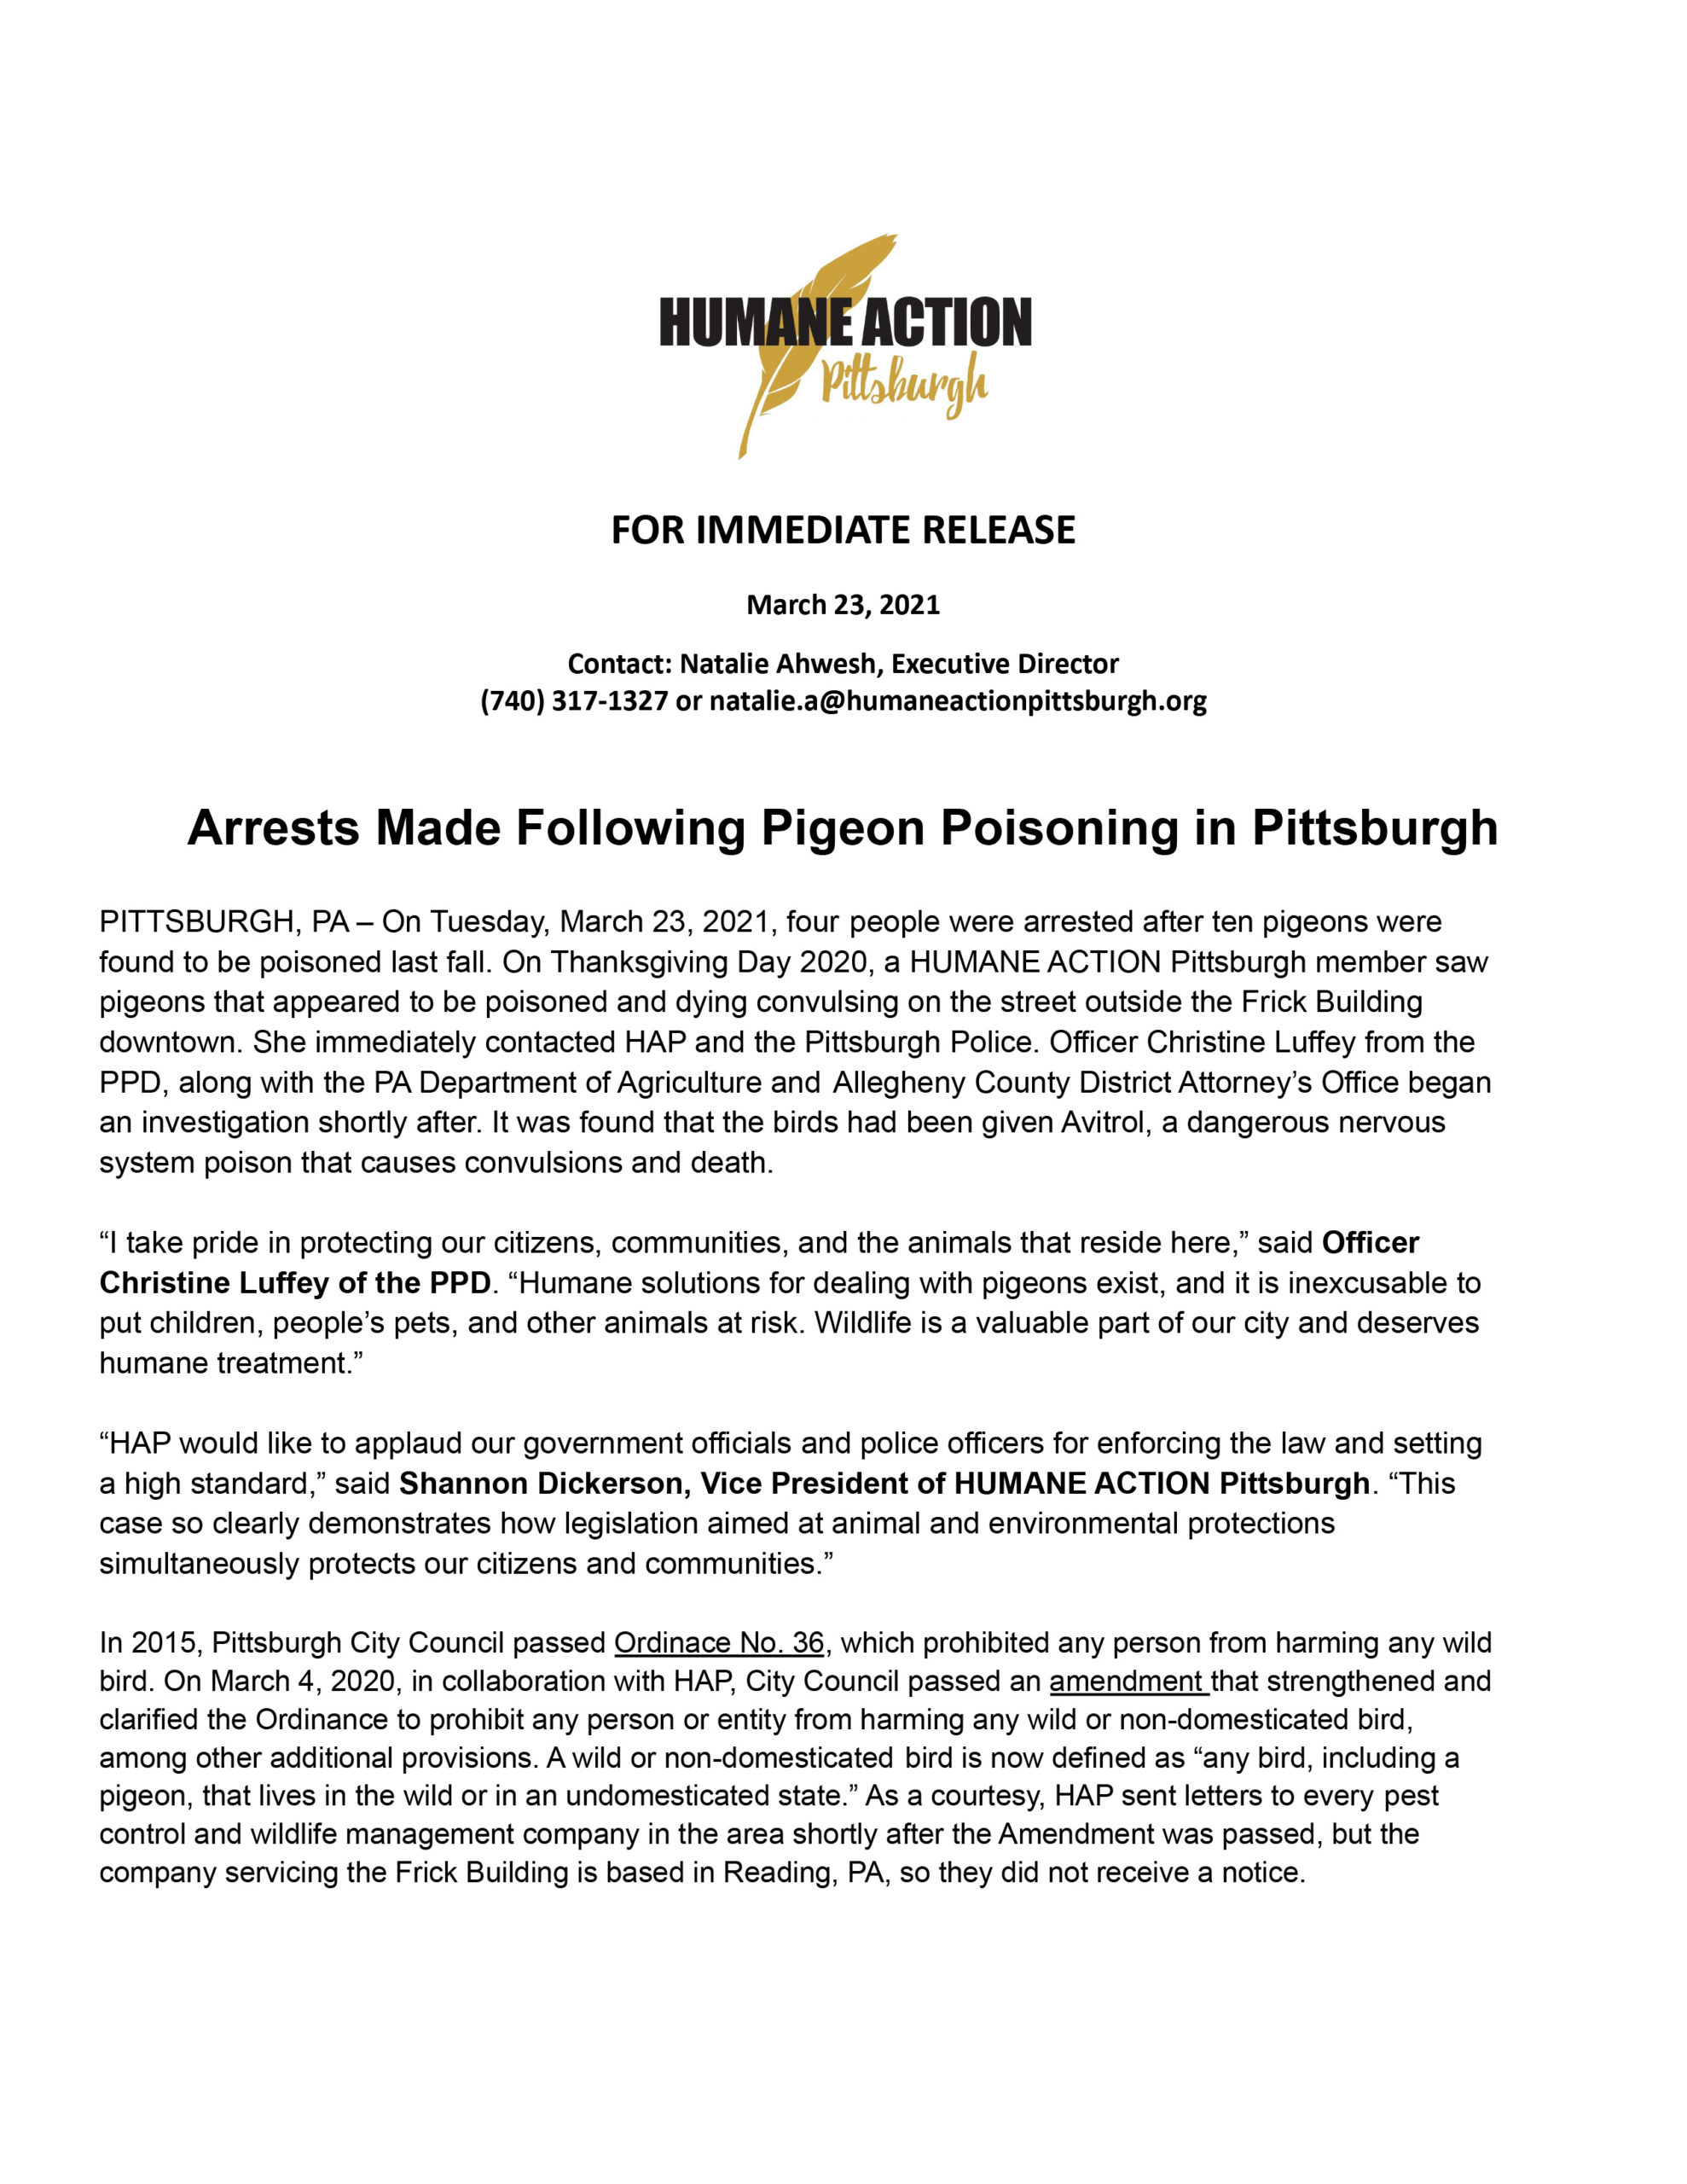 Humane Action Pittsburgh Arrests Made After Pigeon Poisoning in Pittsburgh Press Release